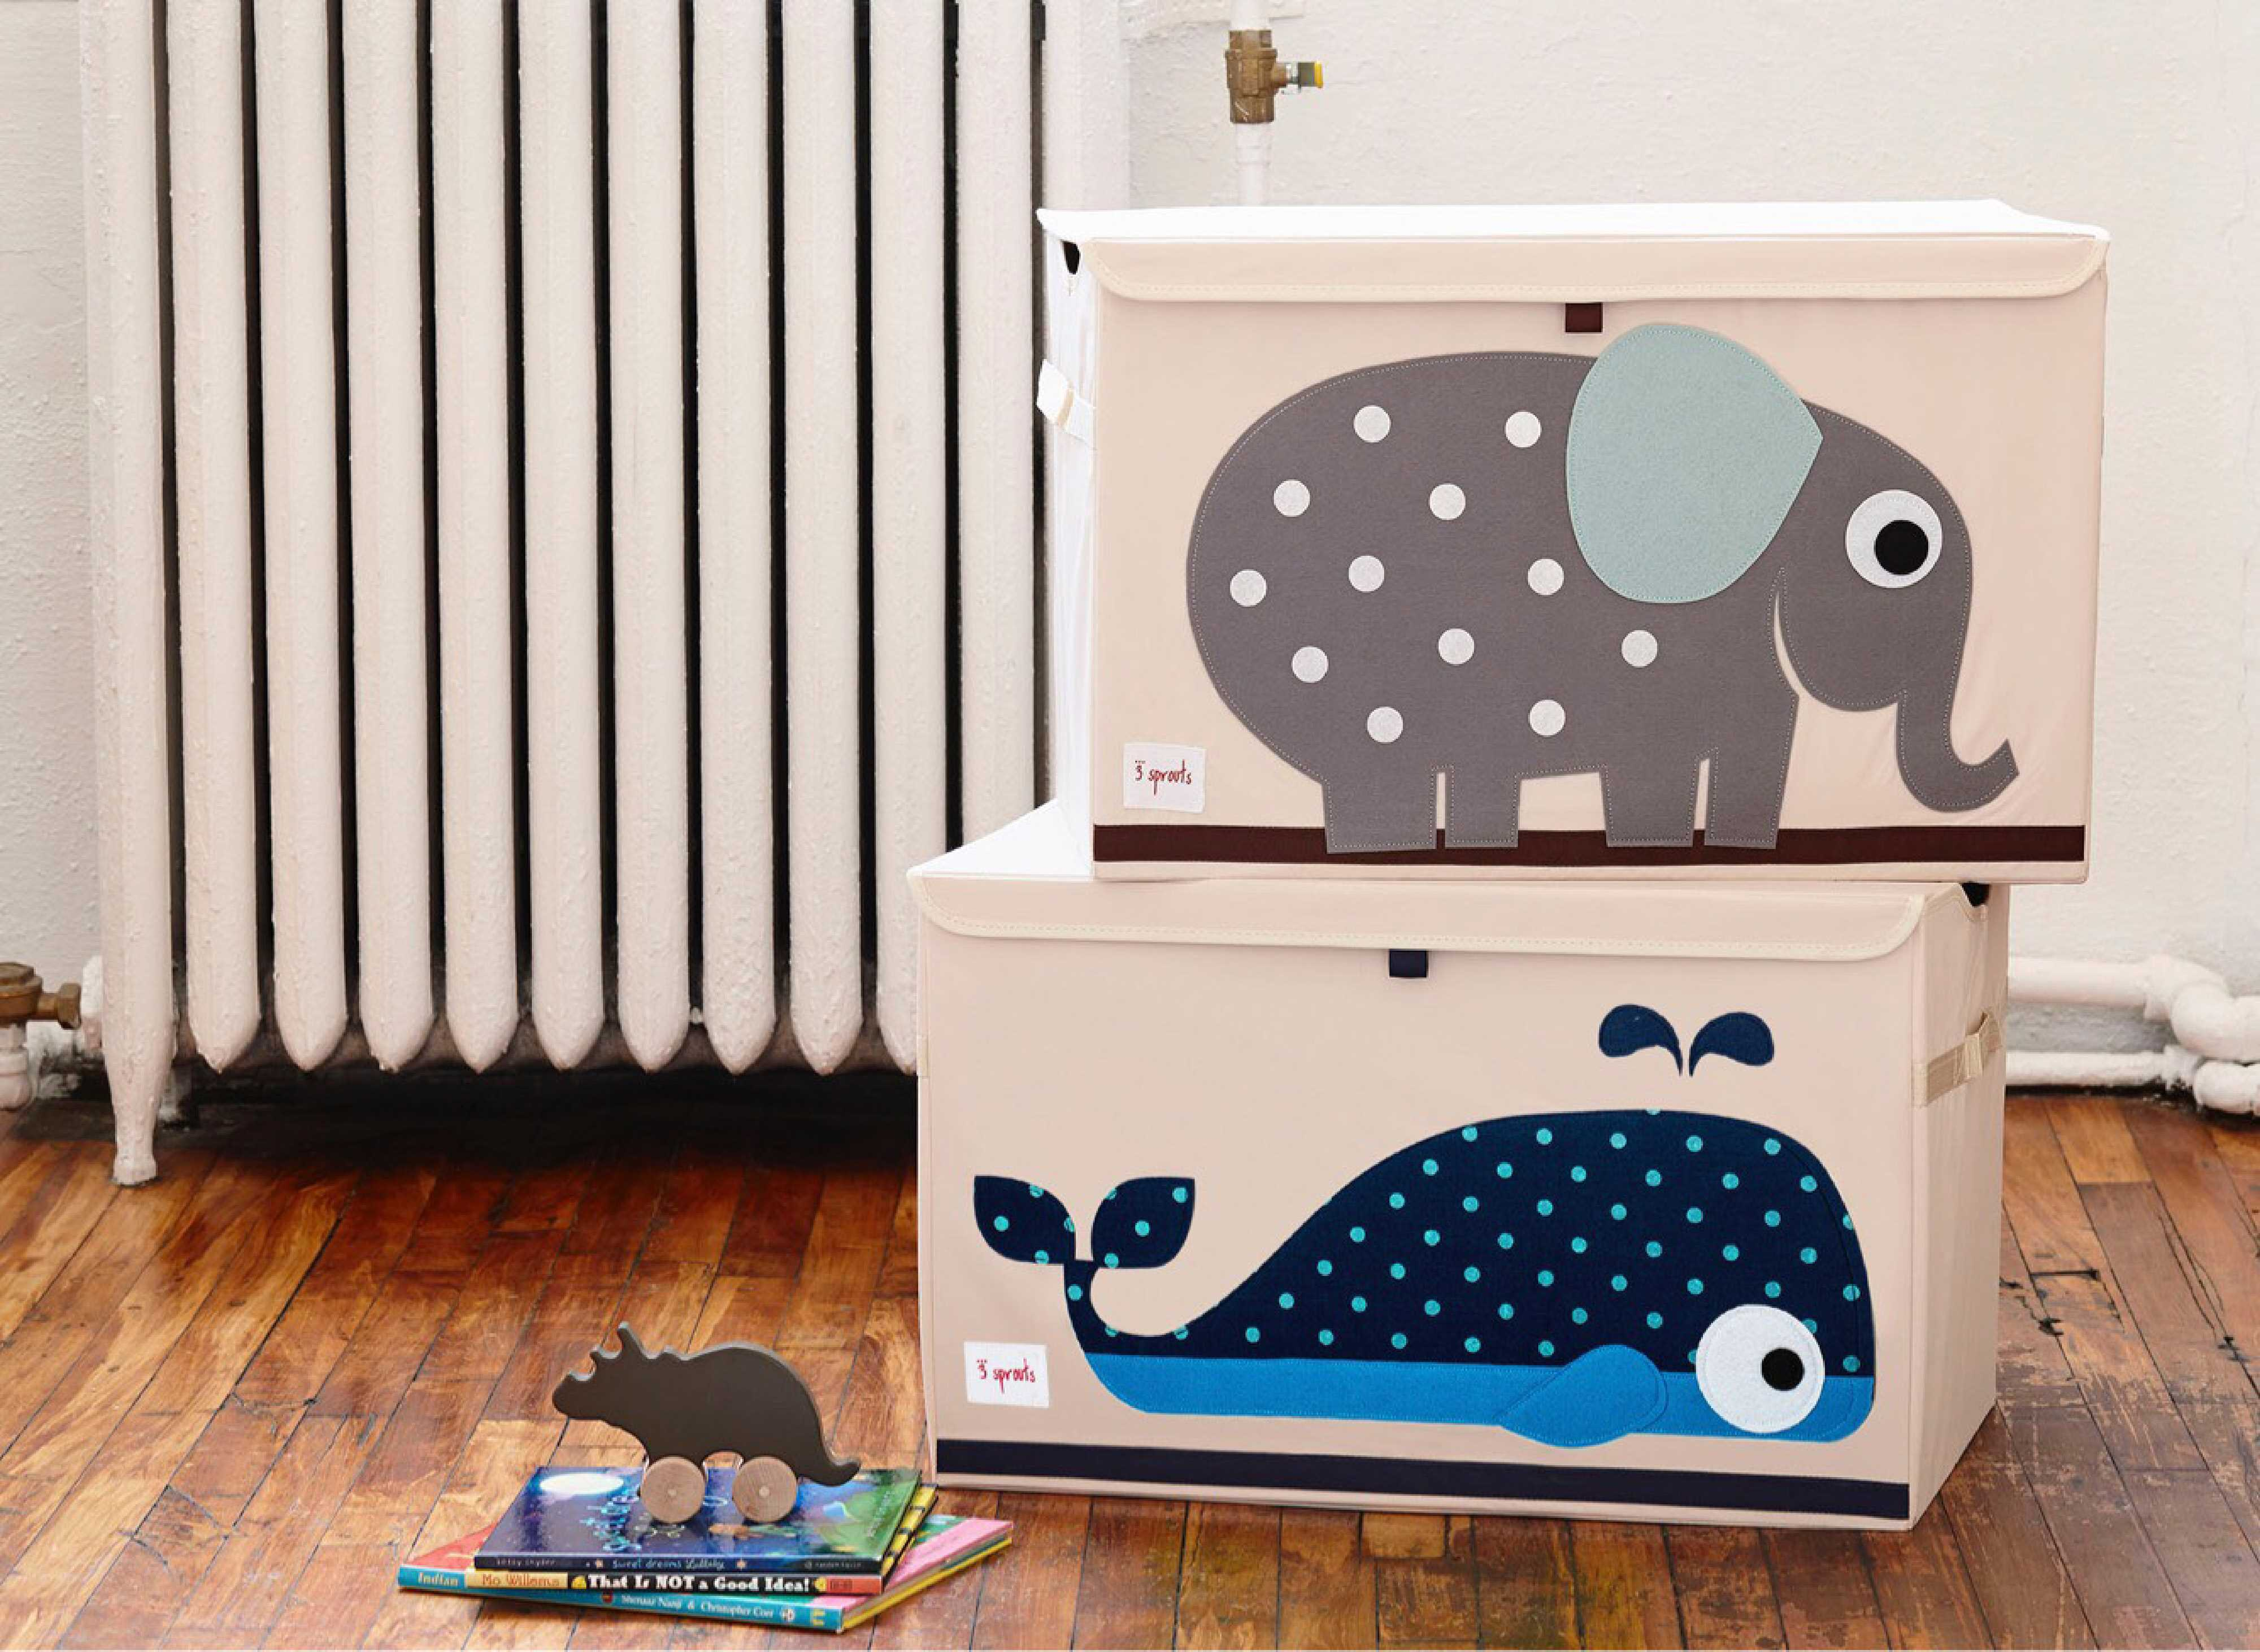 3 sprouts aufbewahrungsbox mit deckel elefant. Black Bedroom Furniture Sets. Home Design Ideas